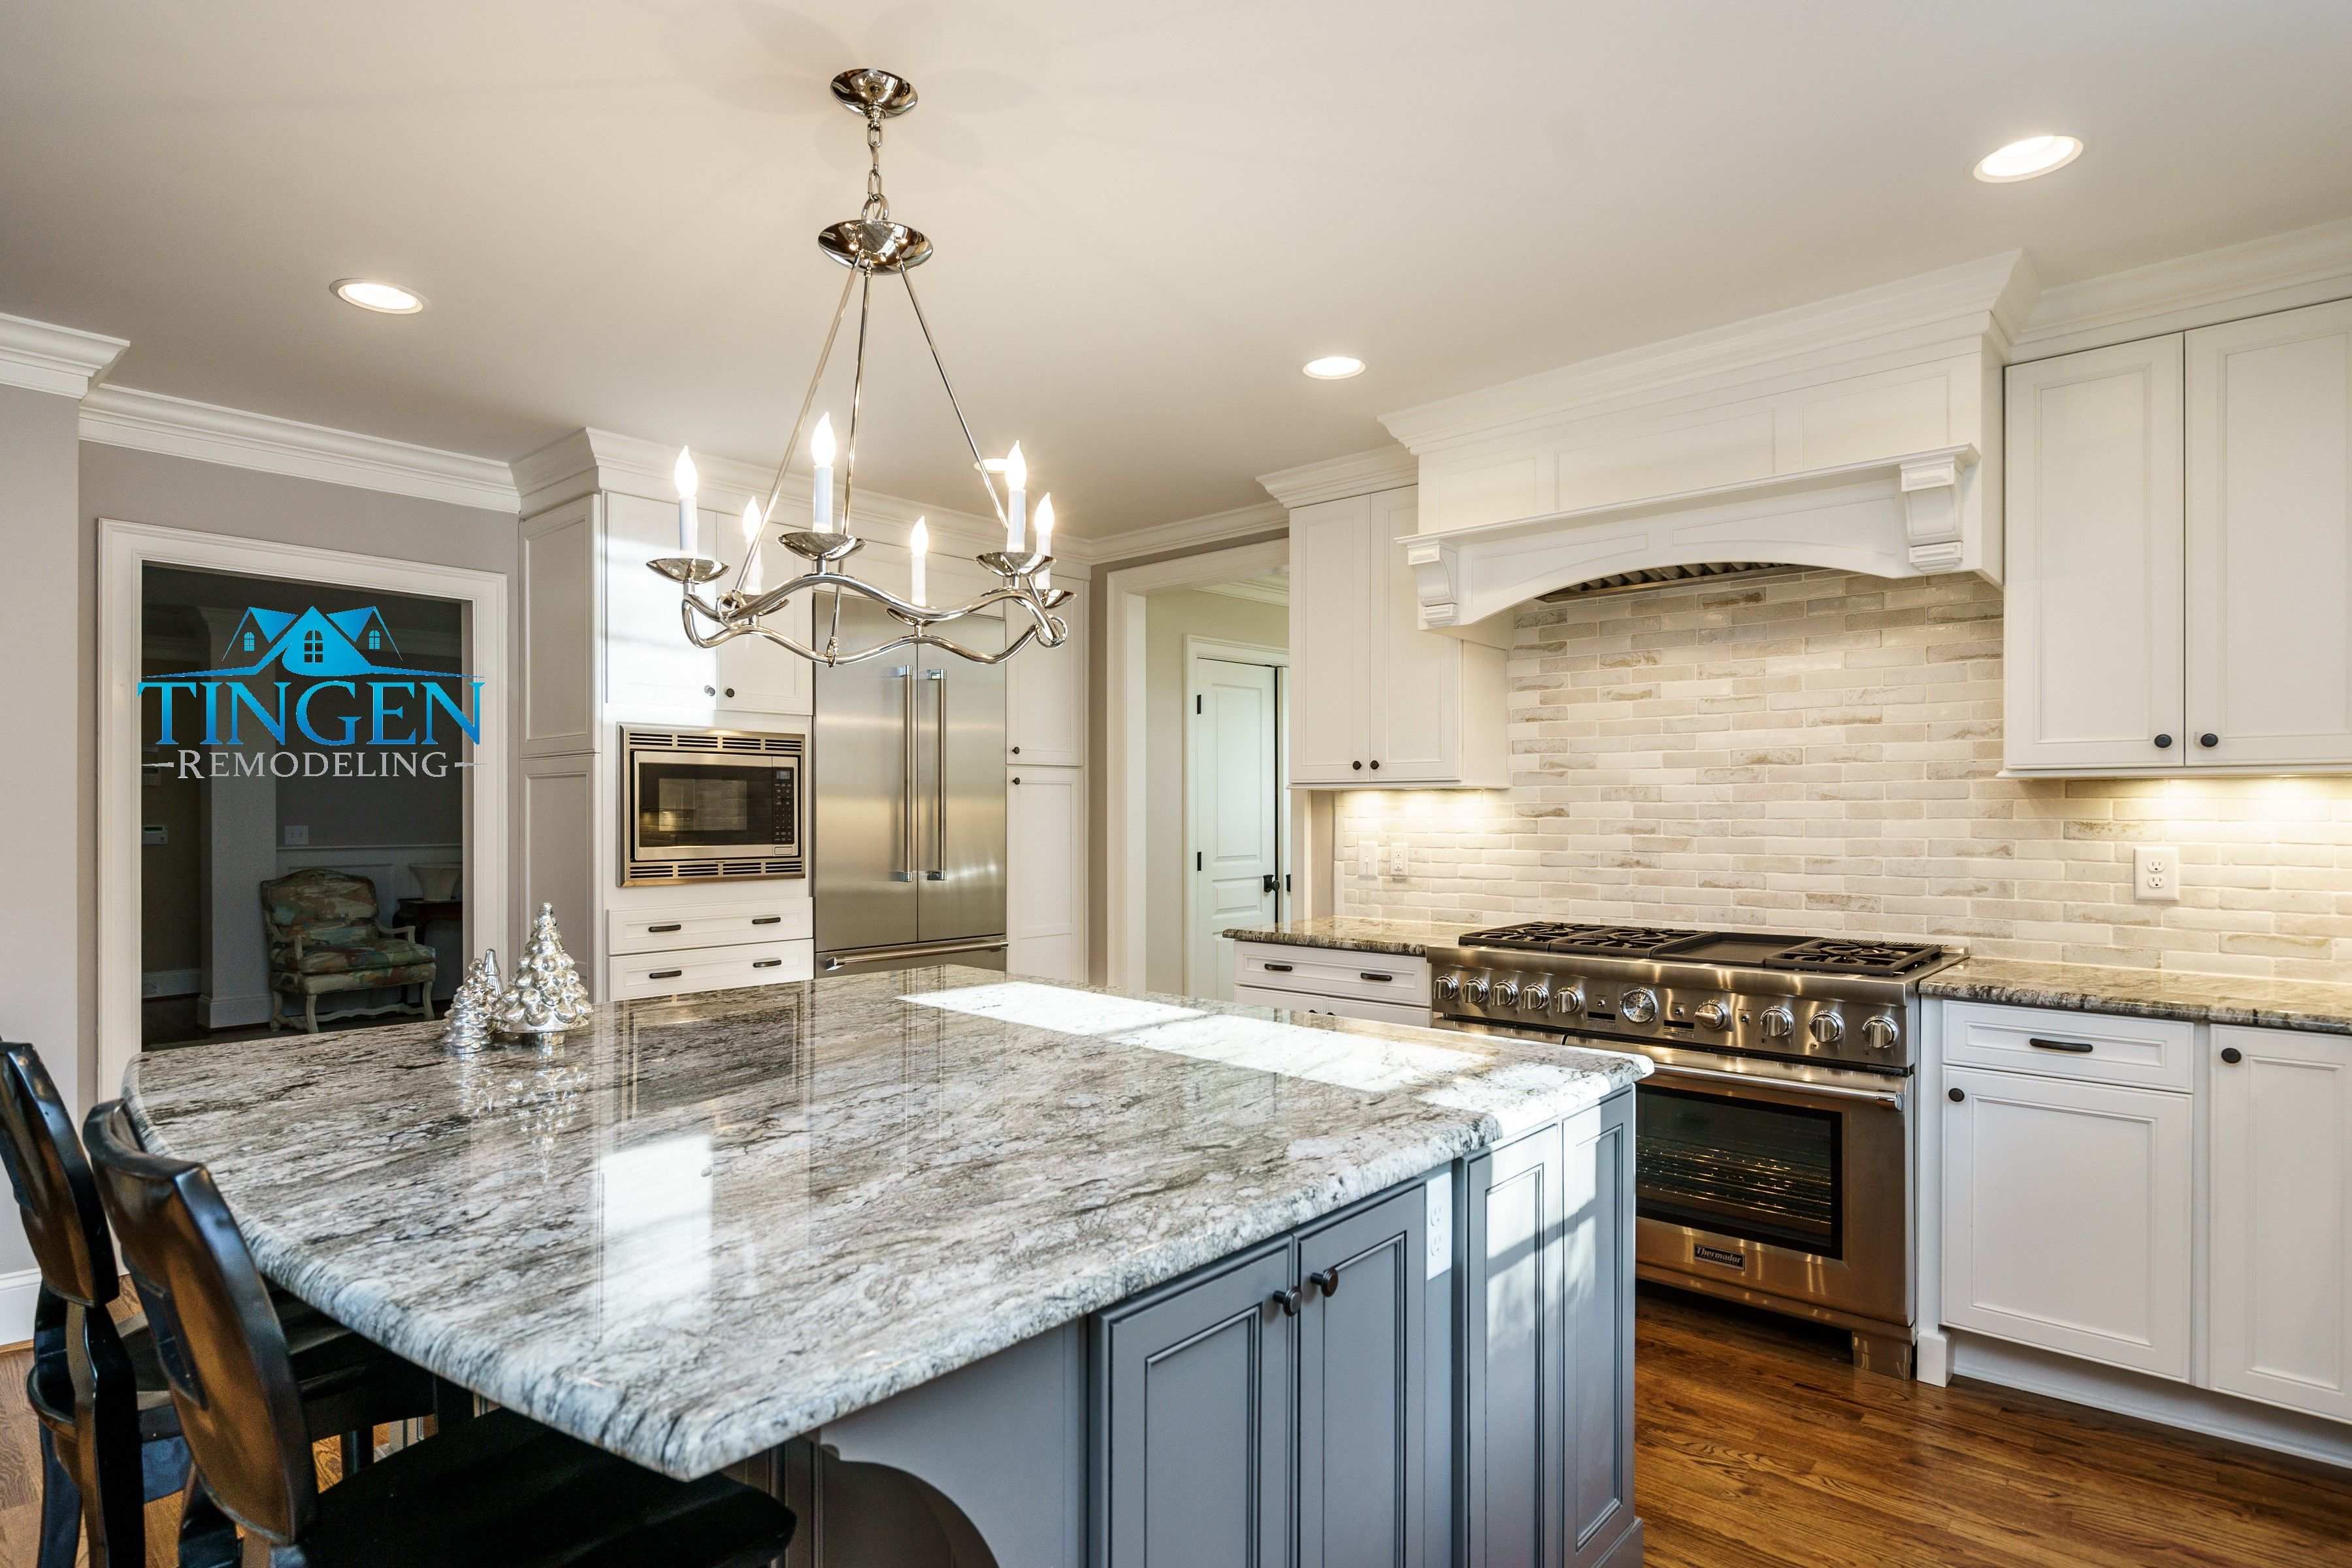 Tingen Remodeling - Raleigh, NC #thermador #kitchen # ...